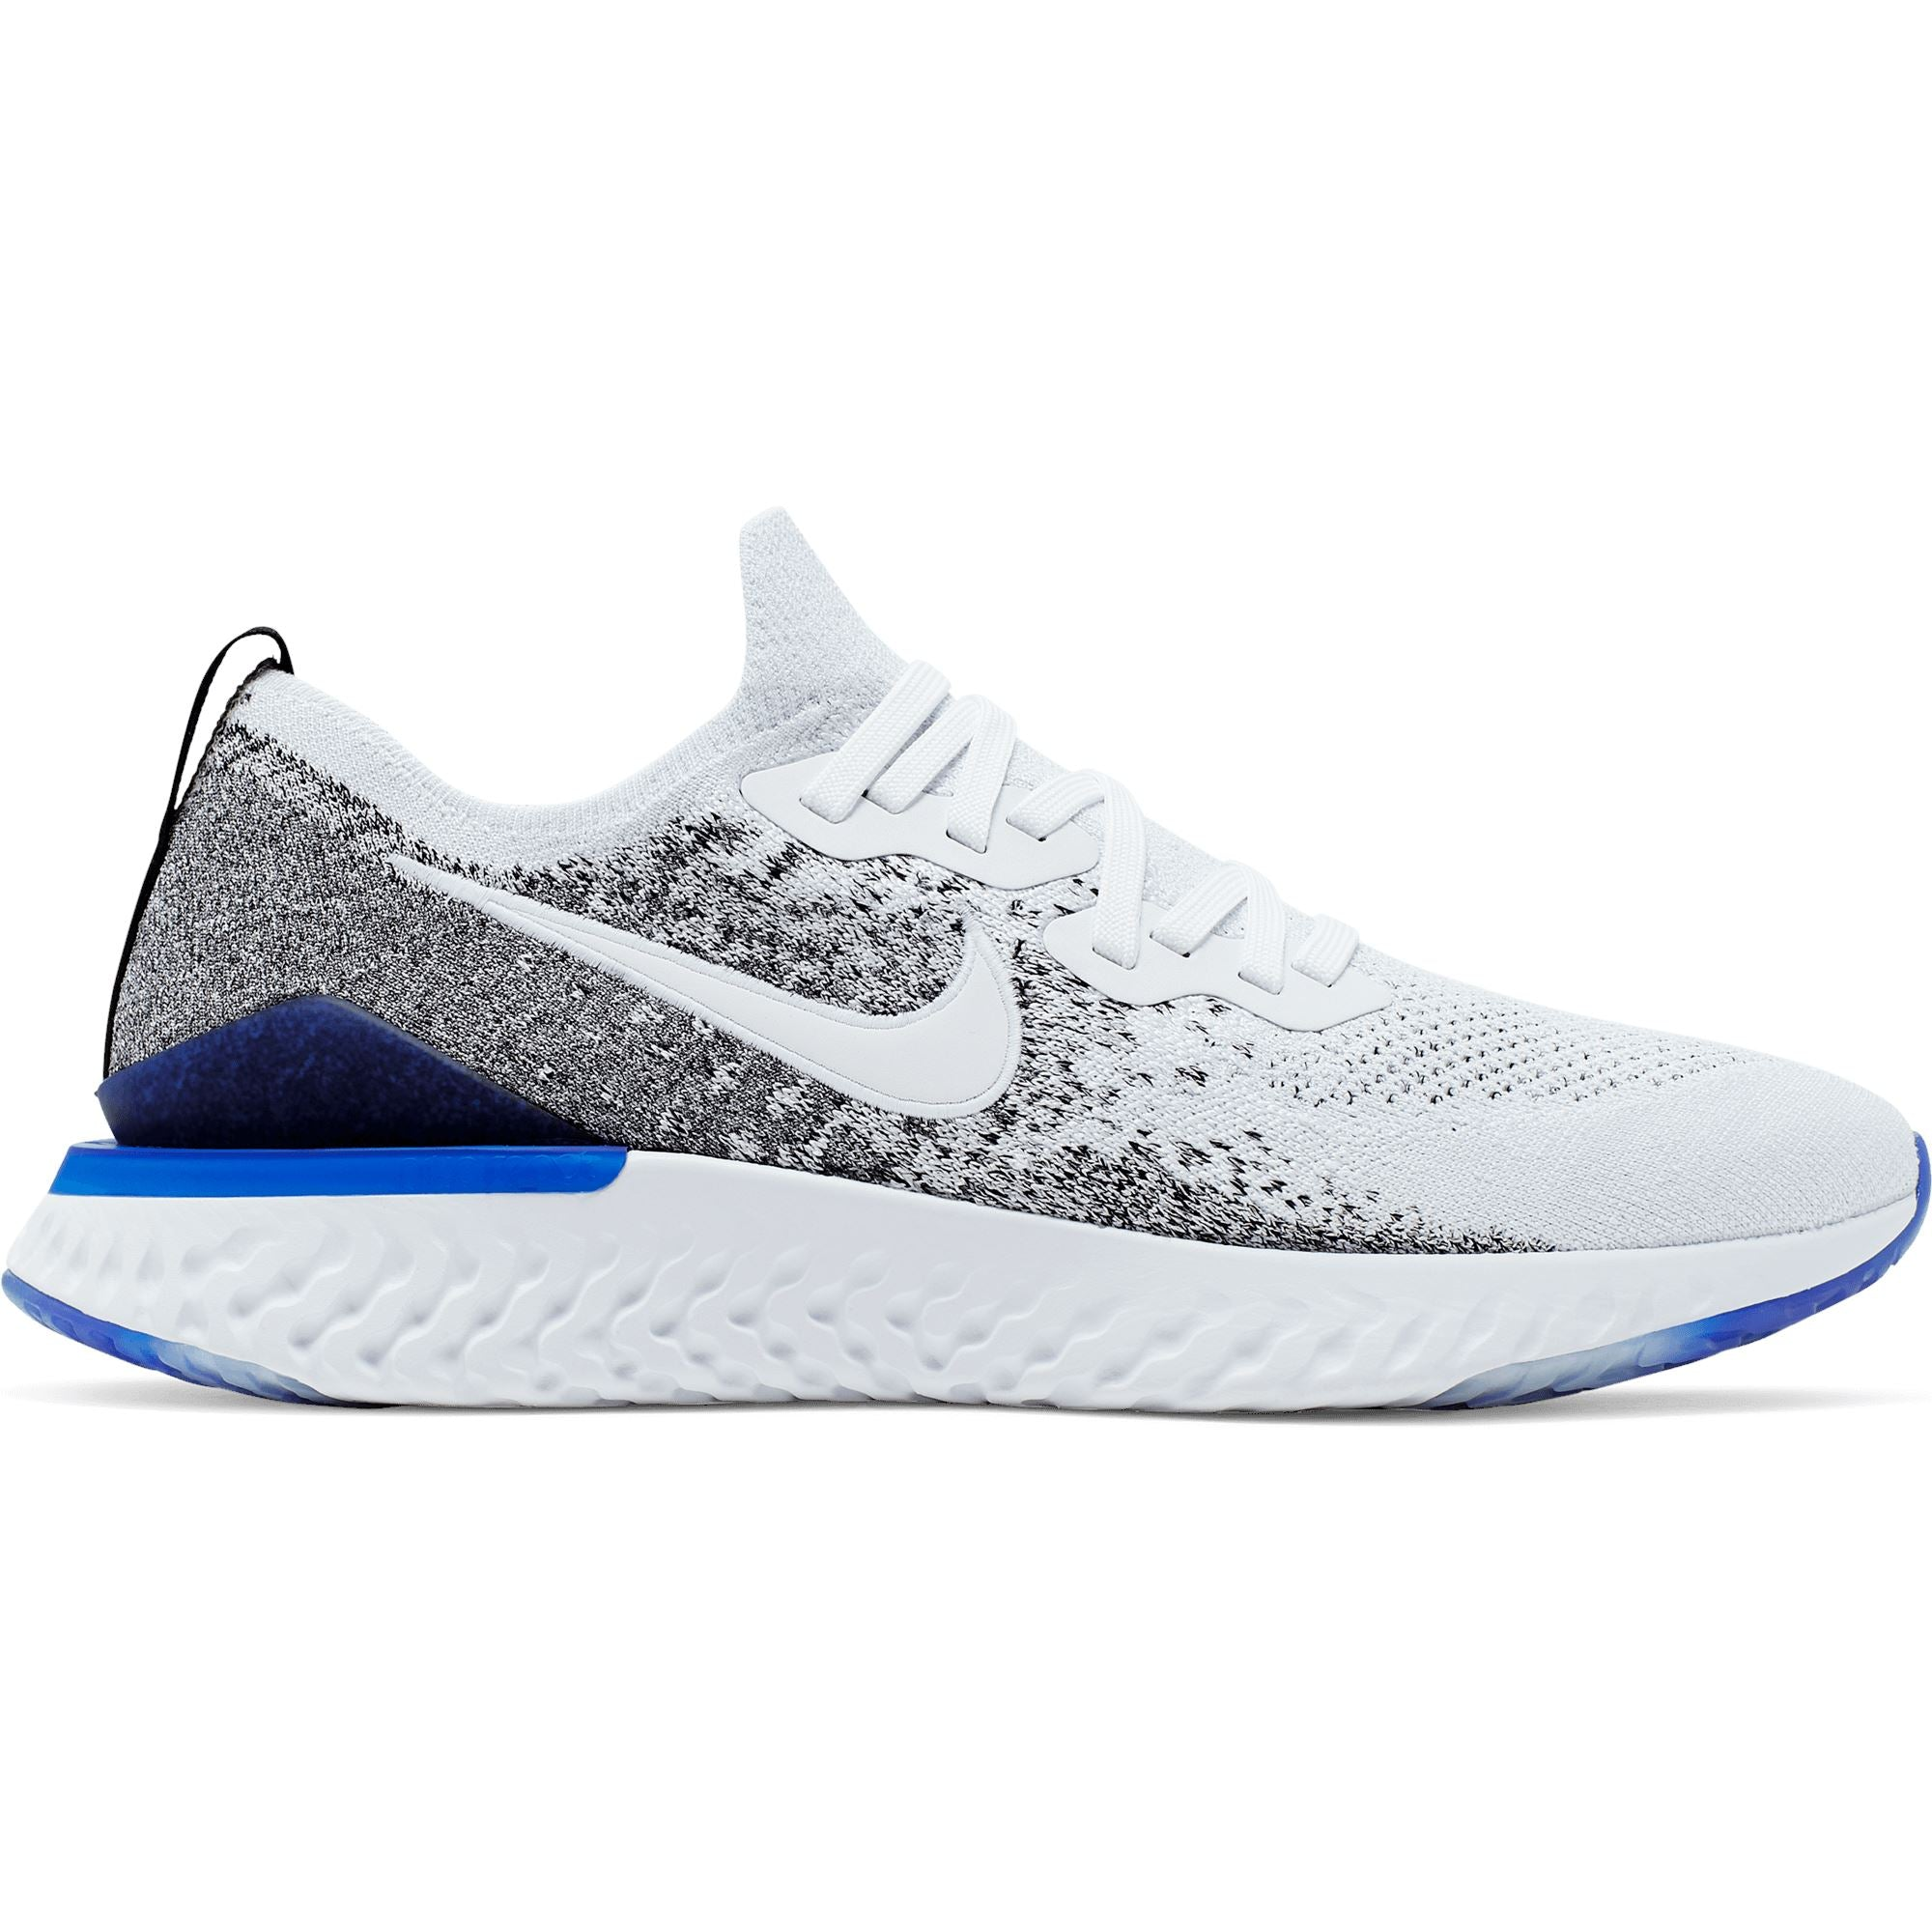 Nike Men's Epic React Flyknit 2 White Shoes - Men Nike